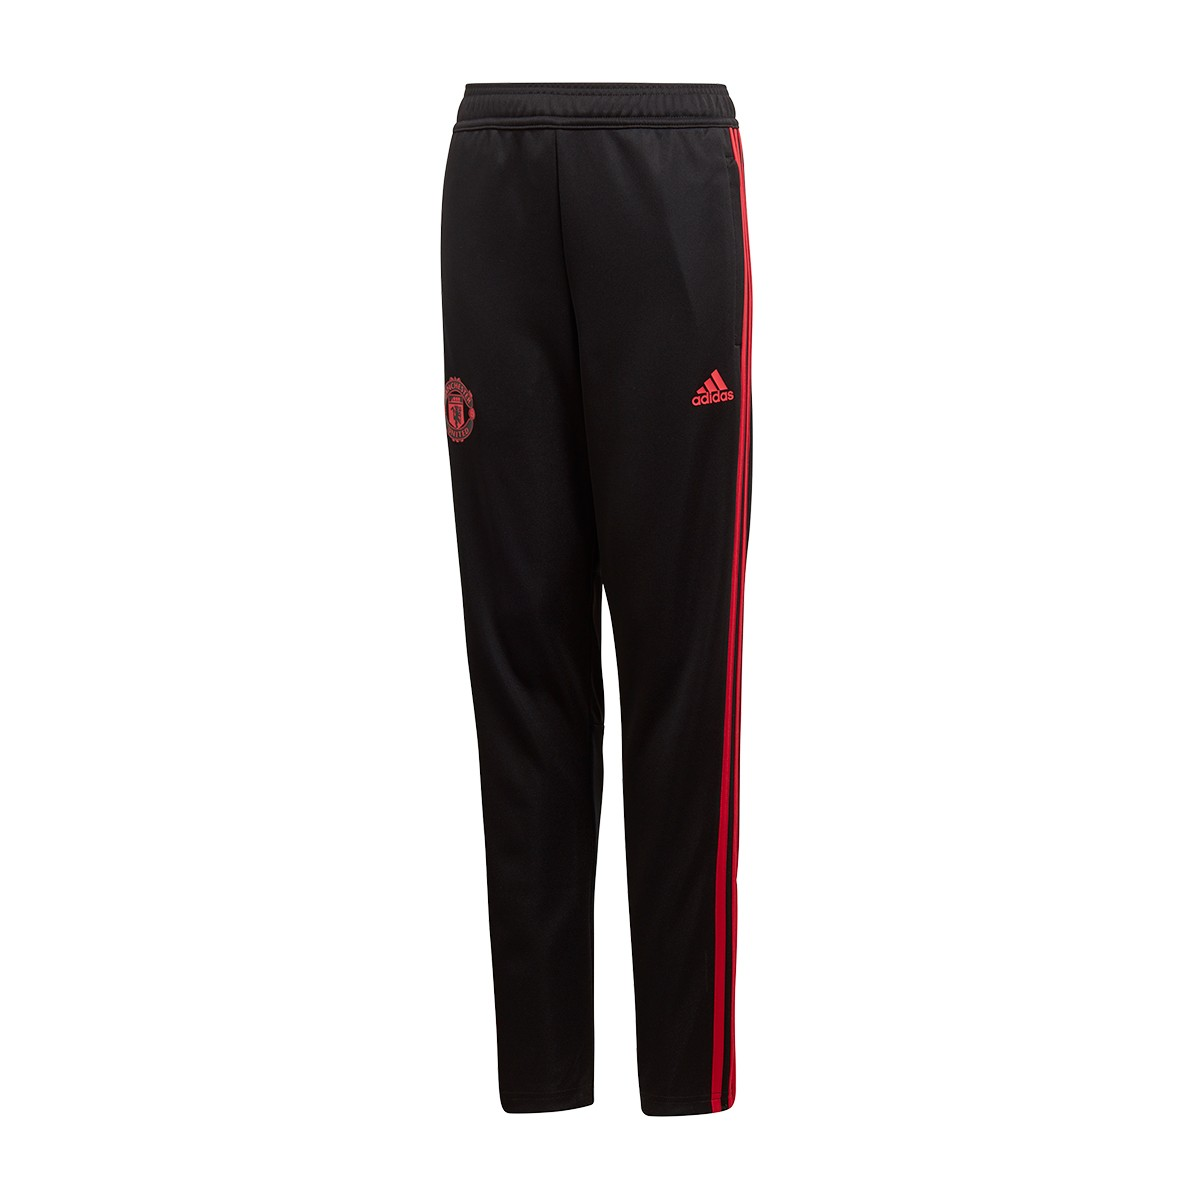 b1510ce08 adidas Kids Manchester United FC Training 2018-2019 Long pants. Black-Blaze  red-Core pink ...